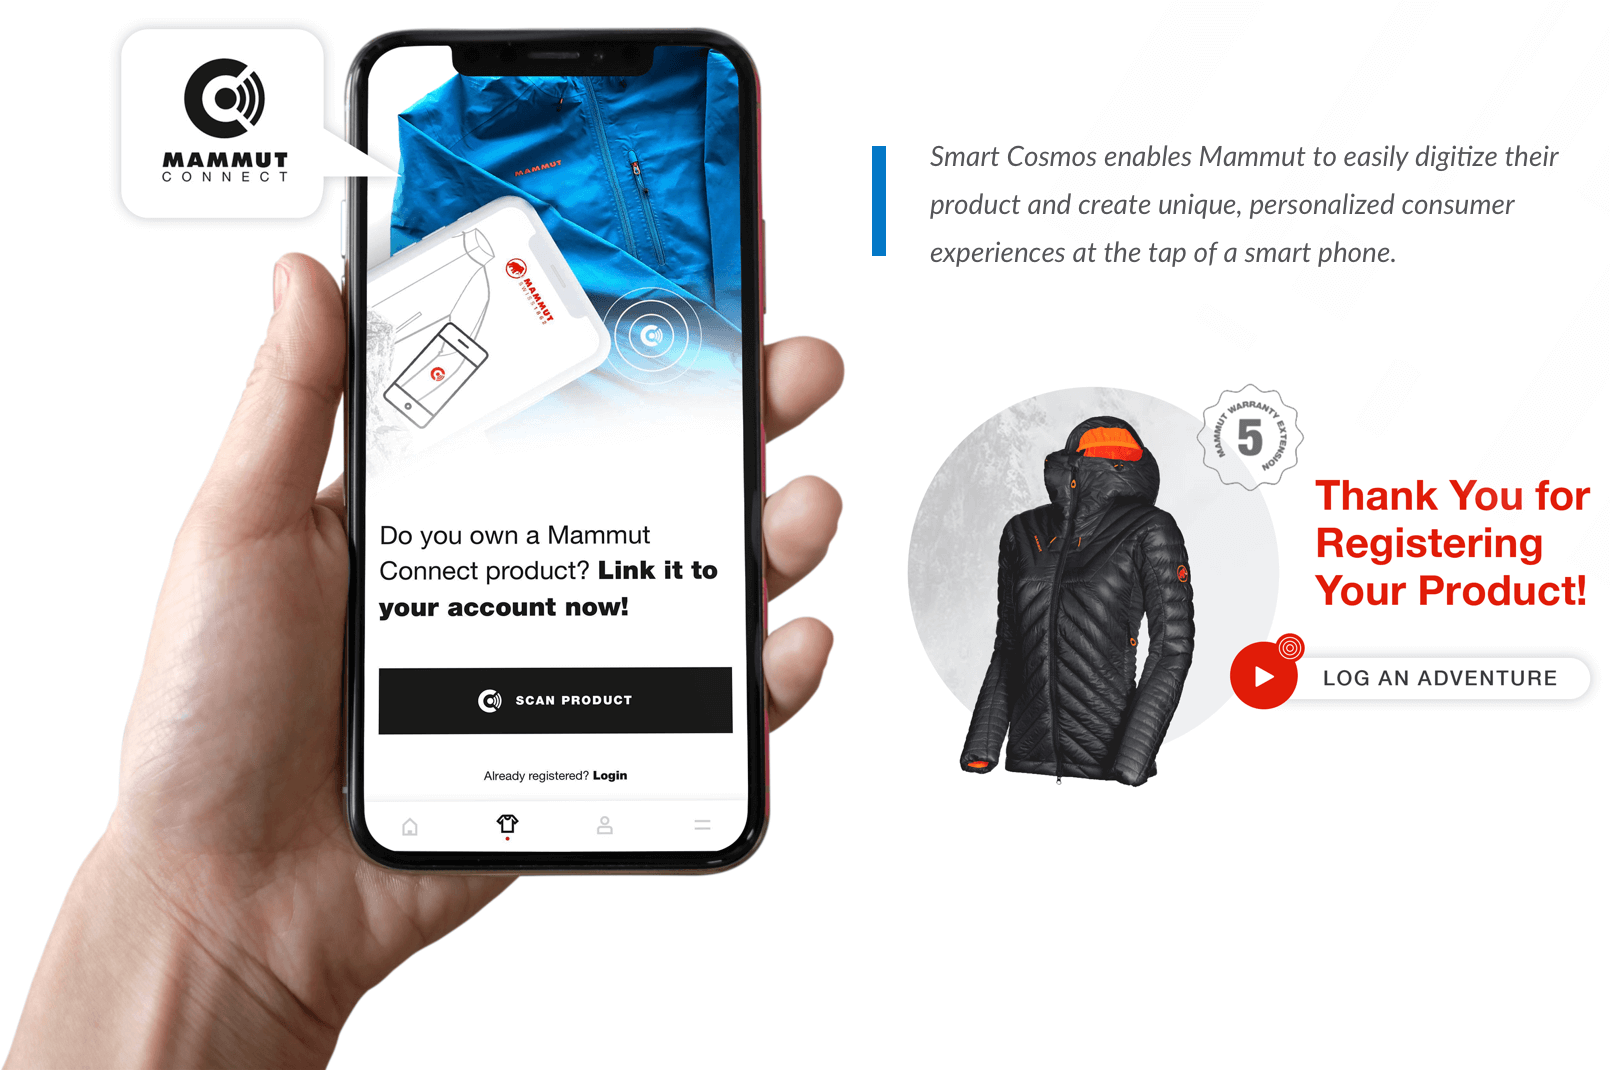 Smart Cosmos enables Mammut to easily digitize their product and create unique, personalized consumer experiences at the tap of a smart phone.